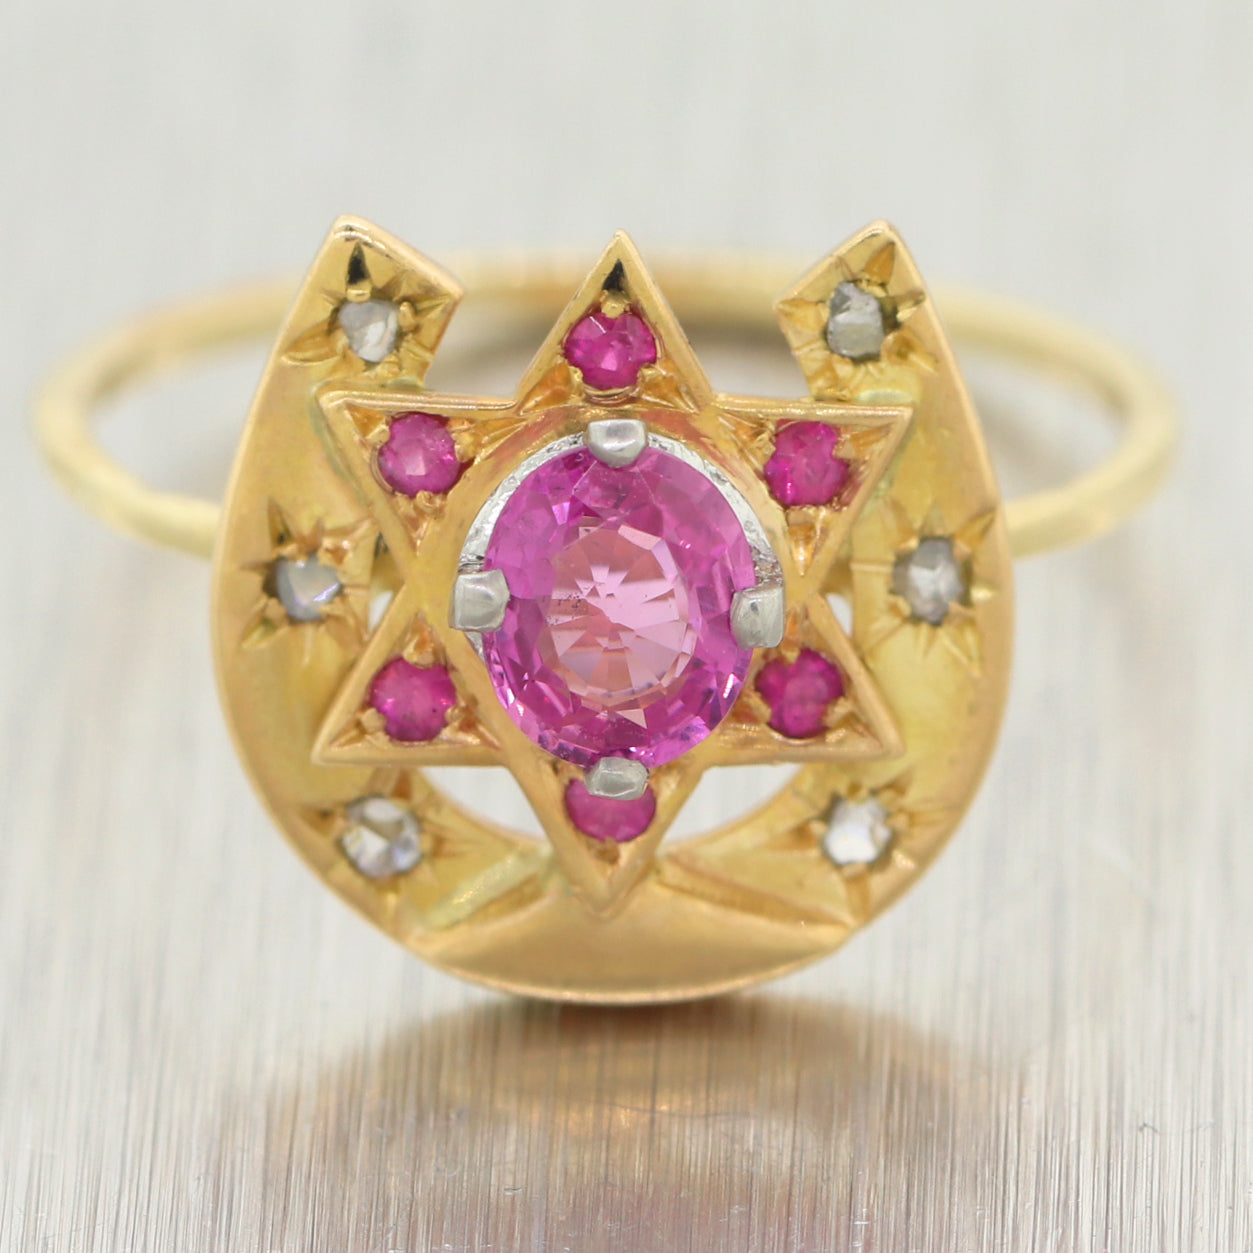 1890s Antique Victorian 14k Yellow Gold Pink Sapphire Diamond Star of David Ring